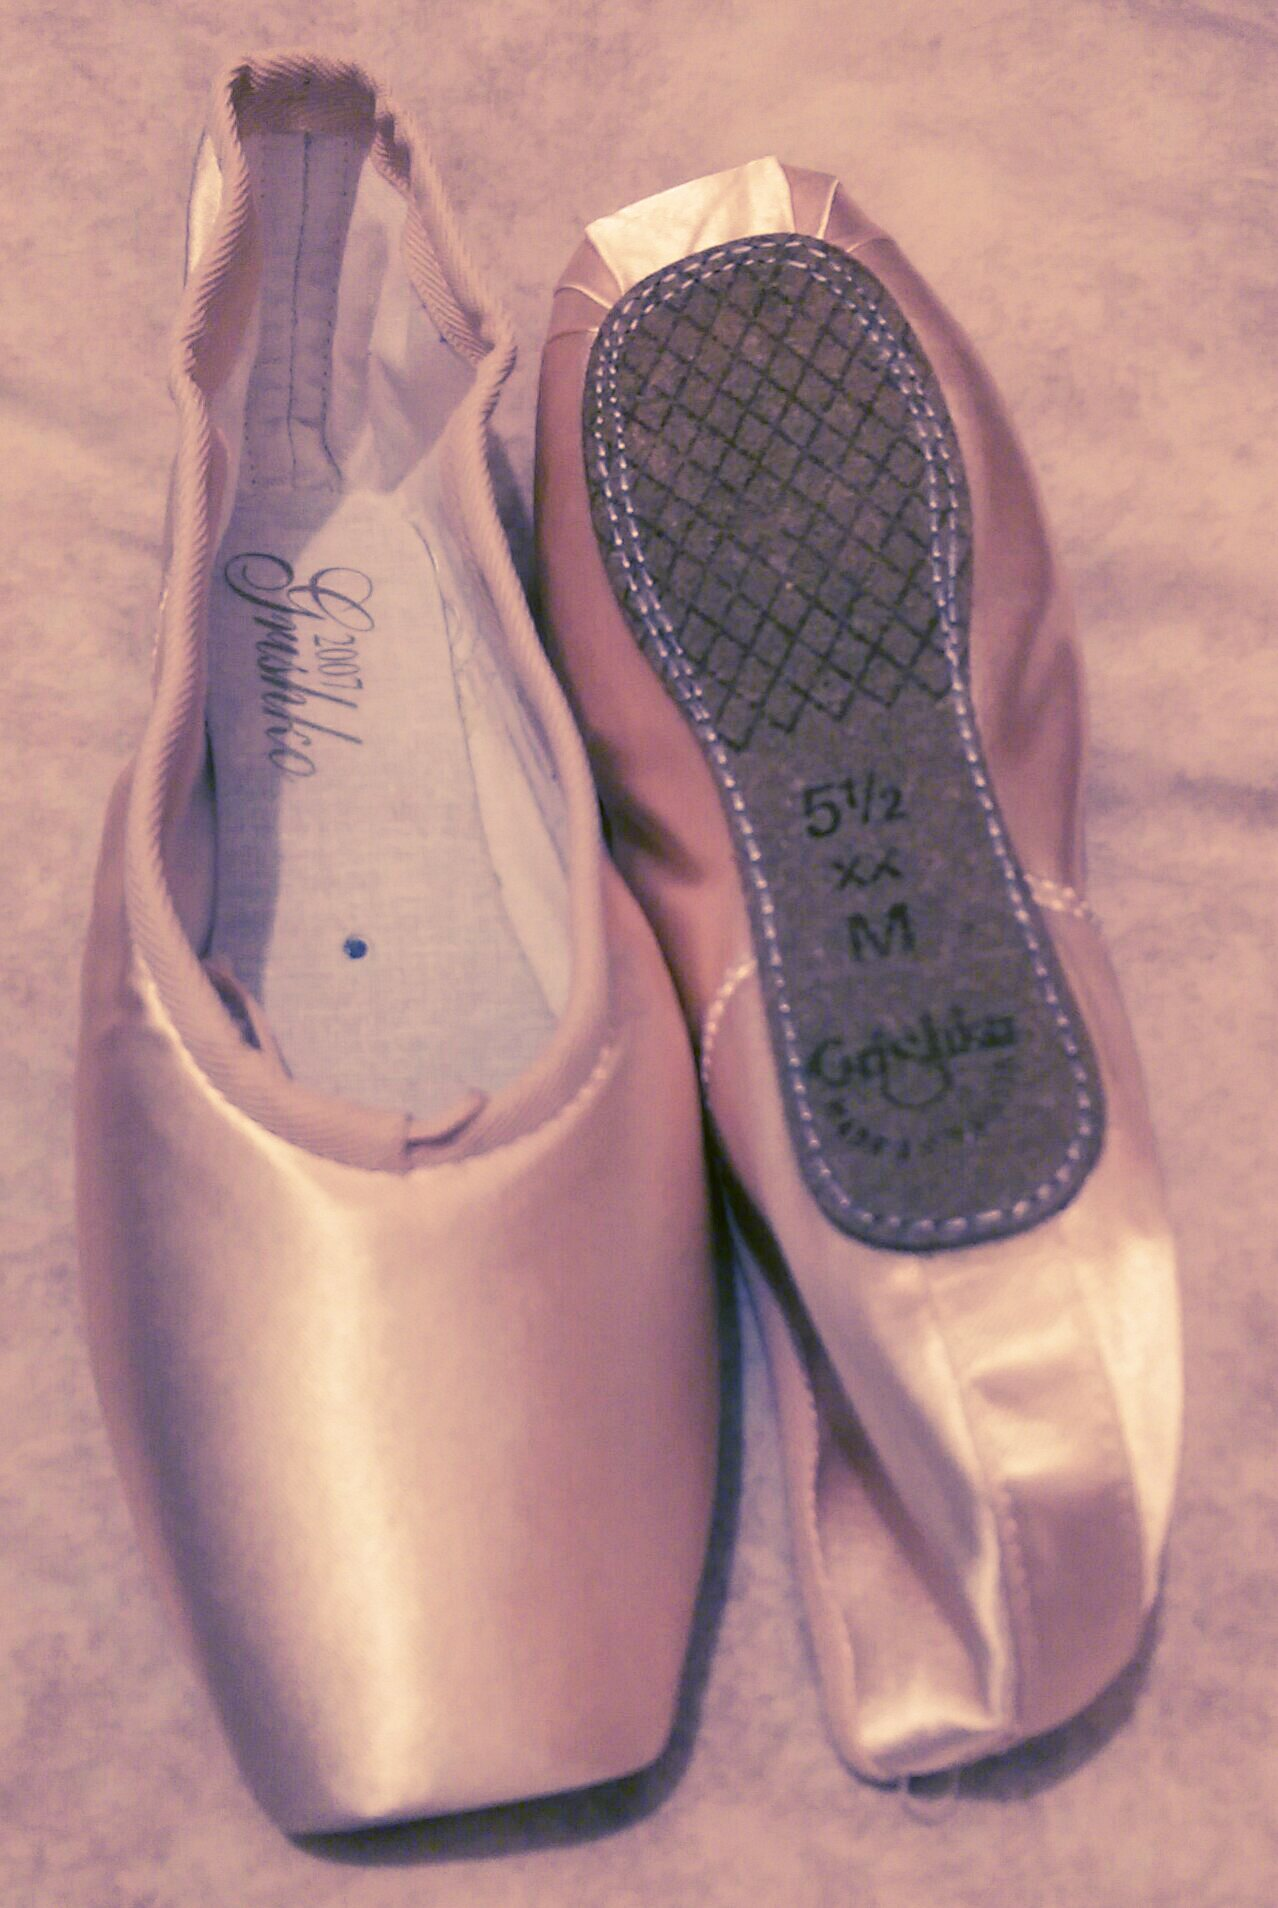 vegan pointe shoes by grishko special order